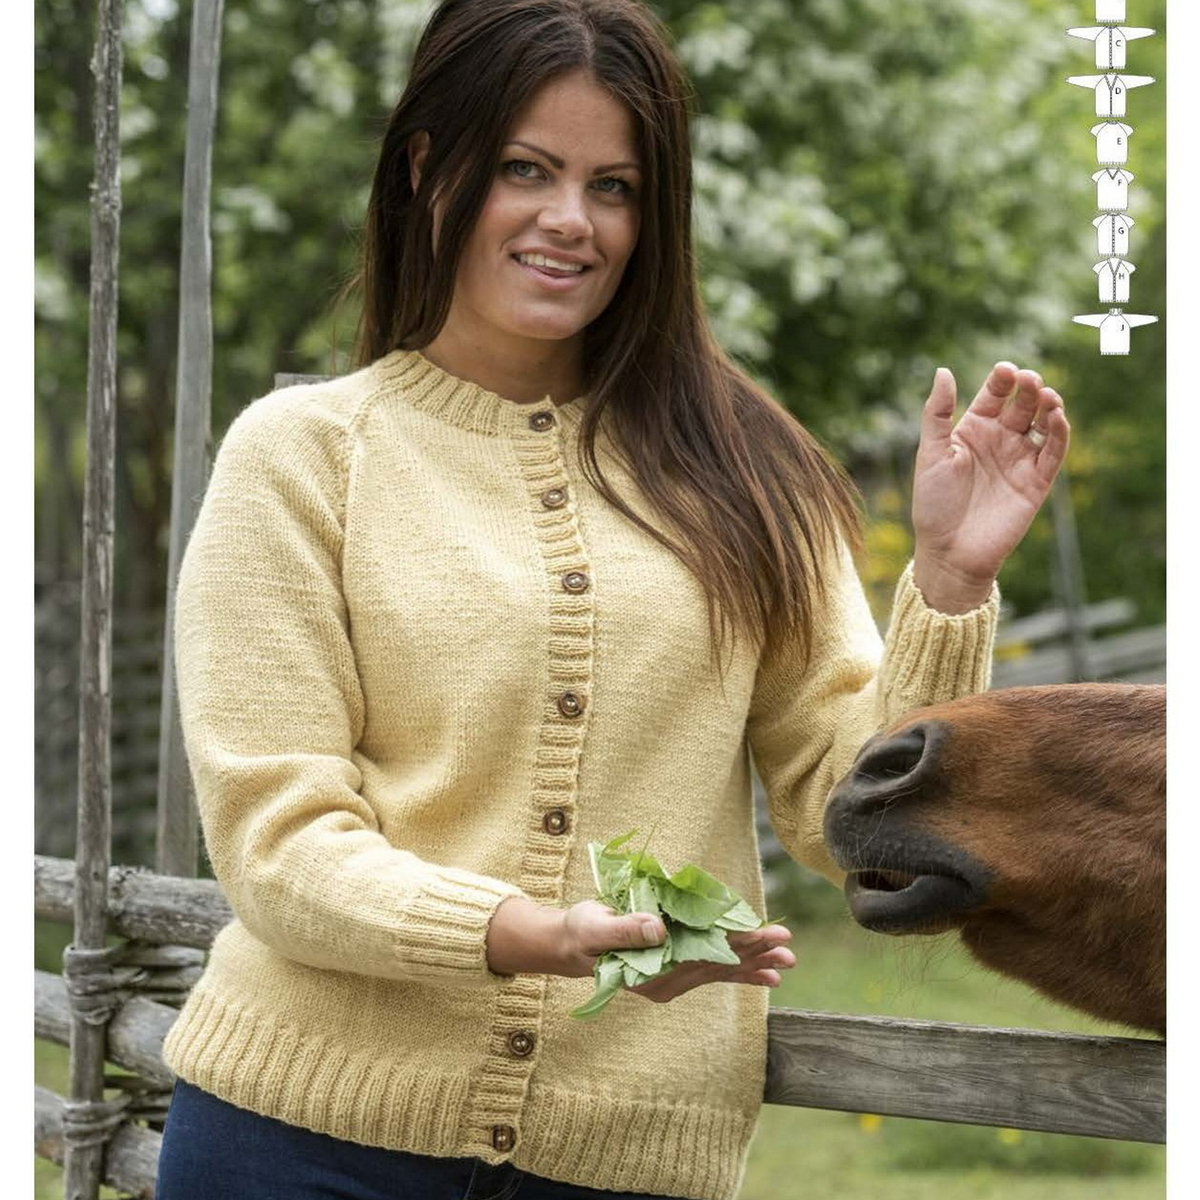 Knit a cardigan and jumper in different styles